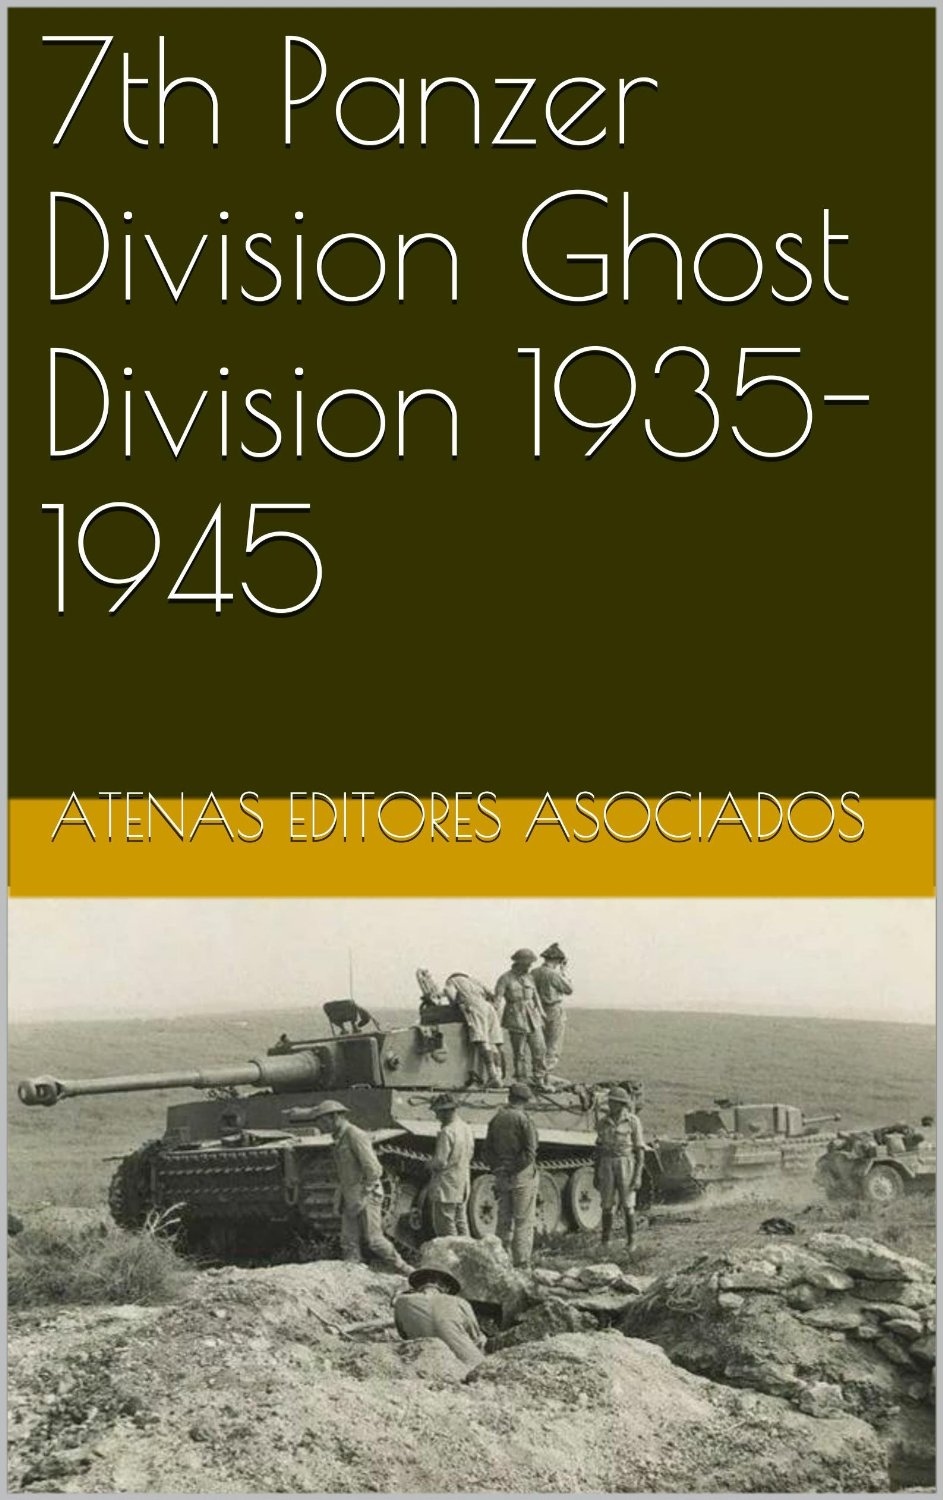 7th Panzer Division Ghost Division 1935-1945 (Divisiones Panzer Book 11) free download